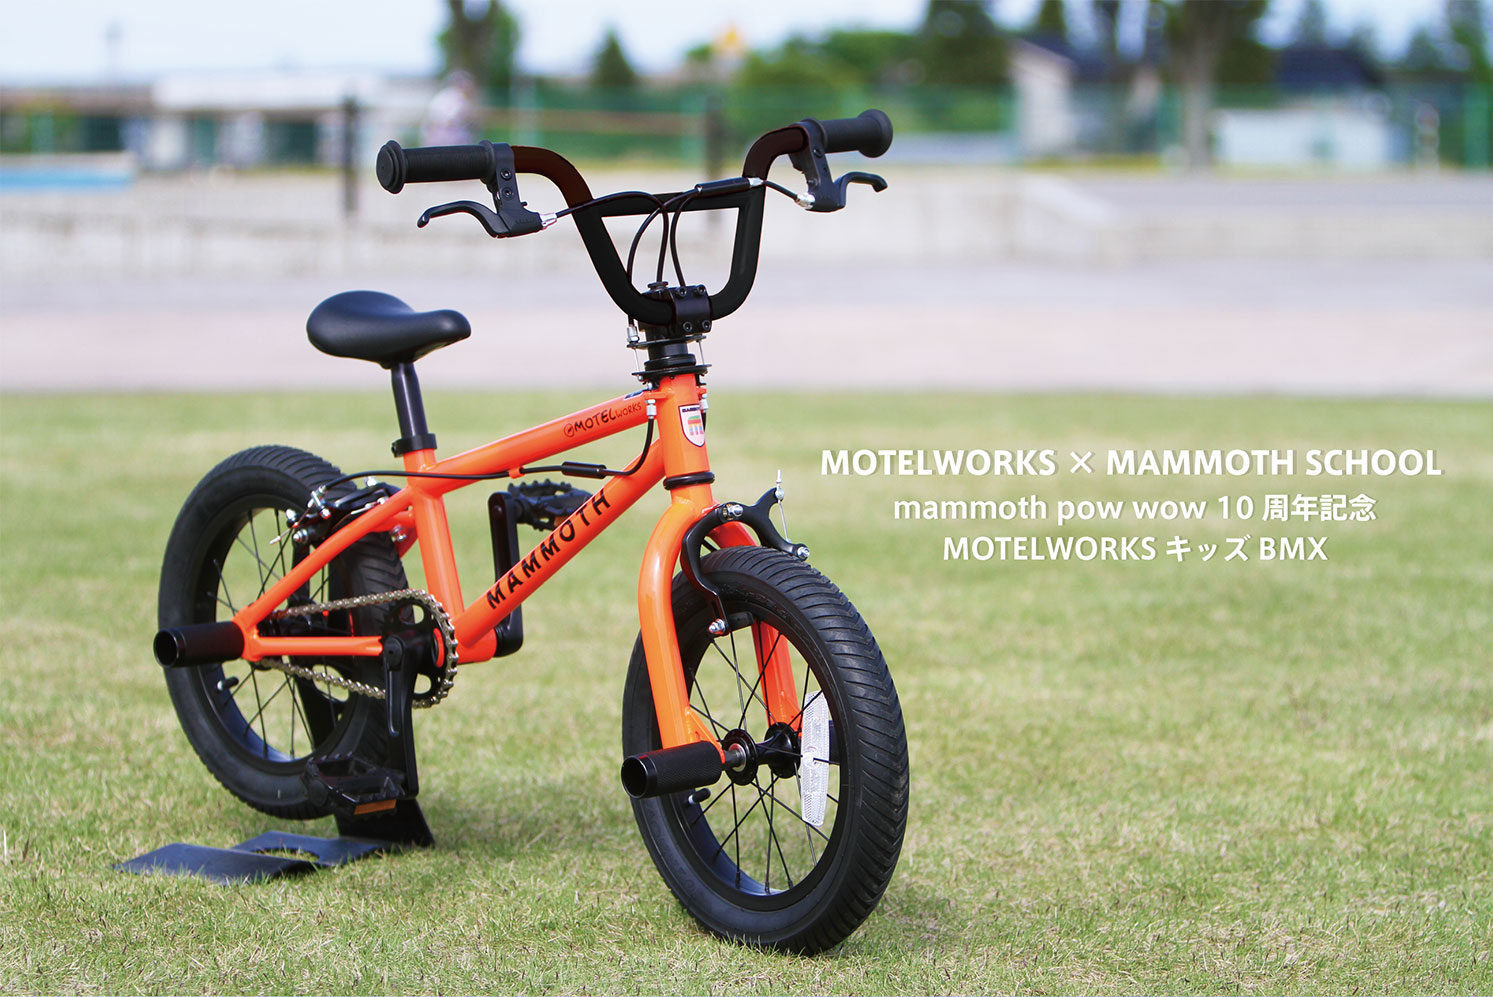 mammoth pow wow 10 周年記念 MOTELWORKS キッズBMX